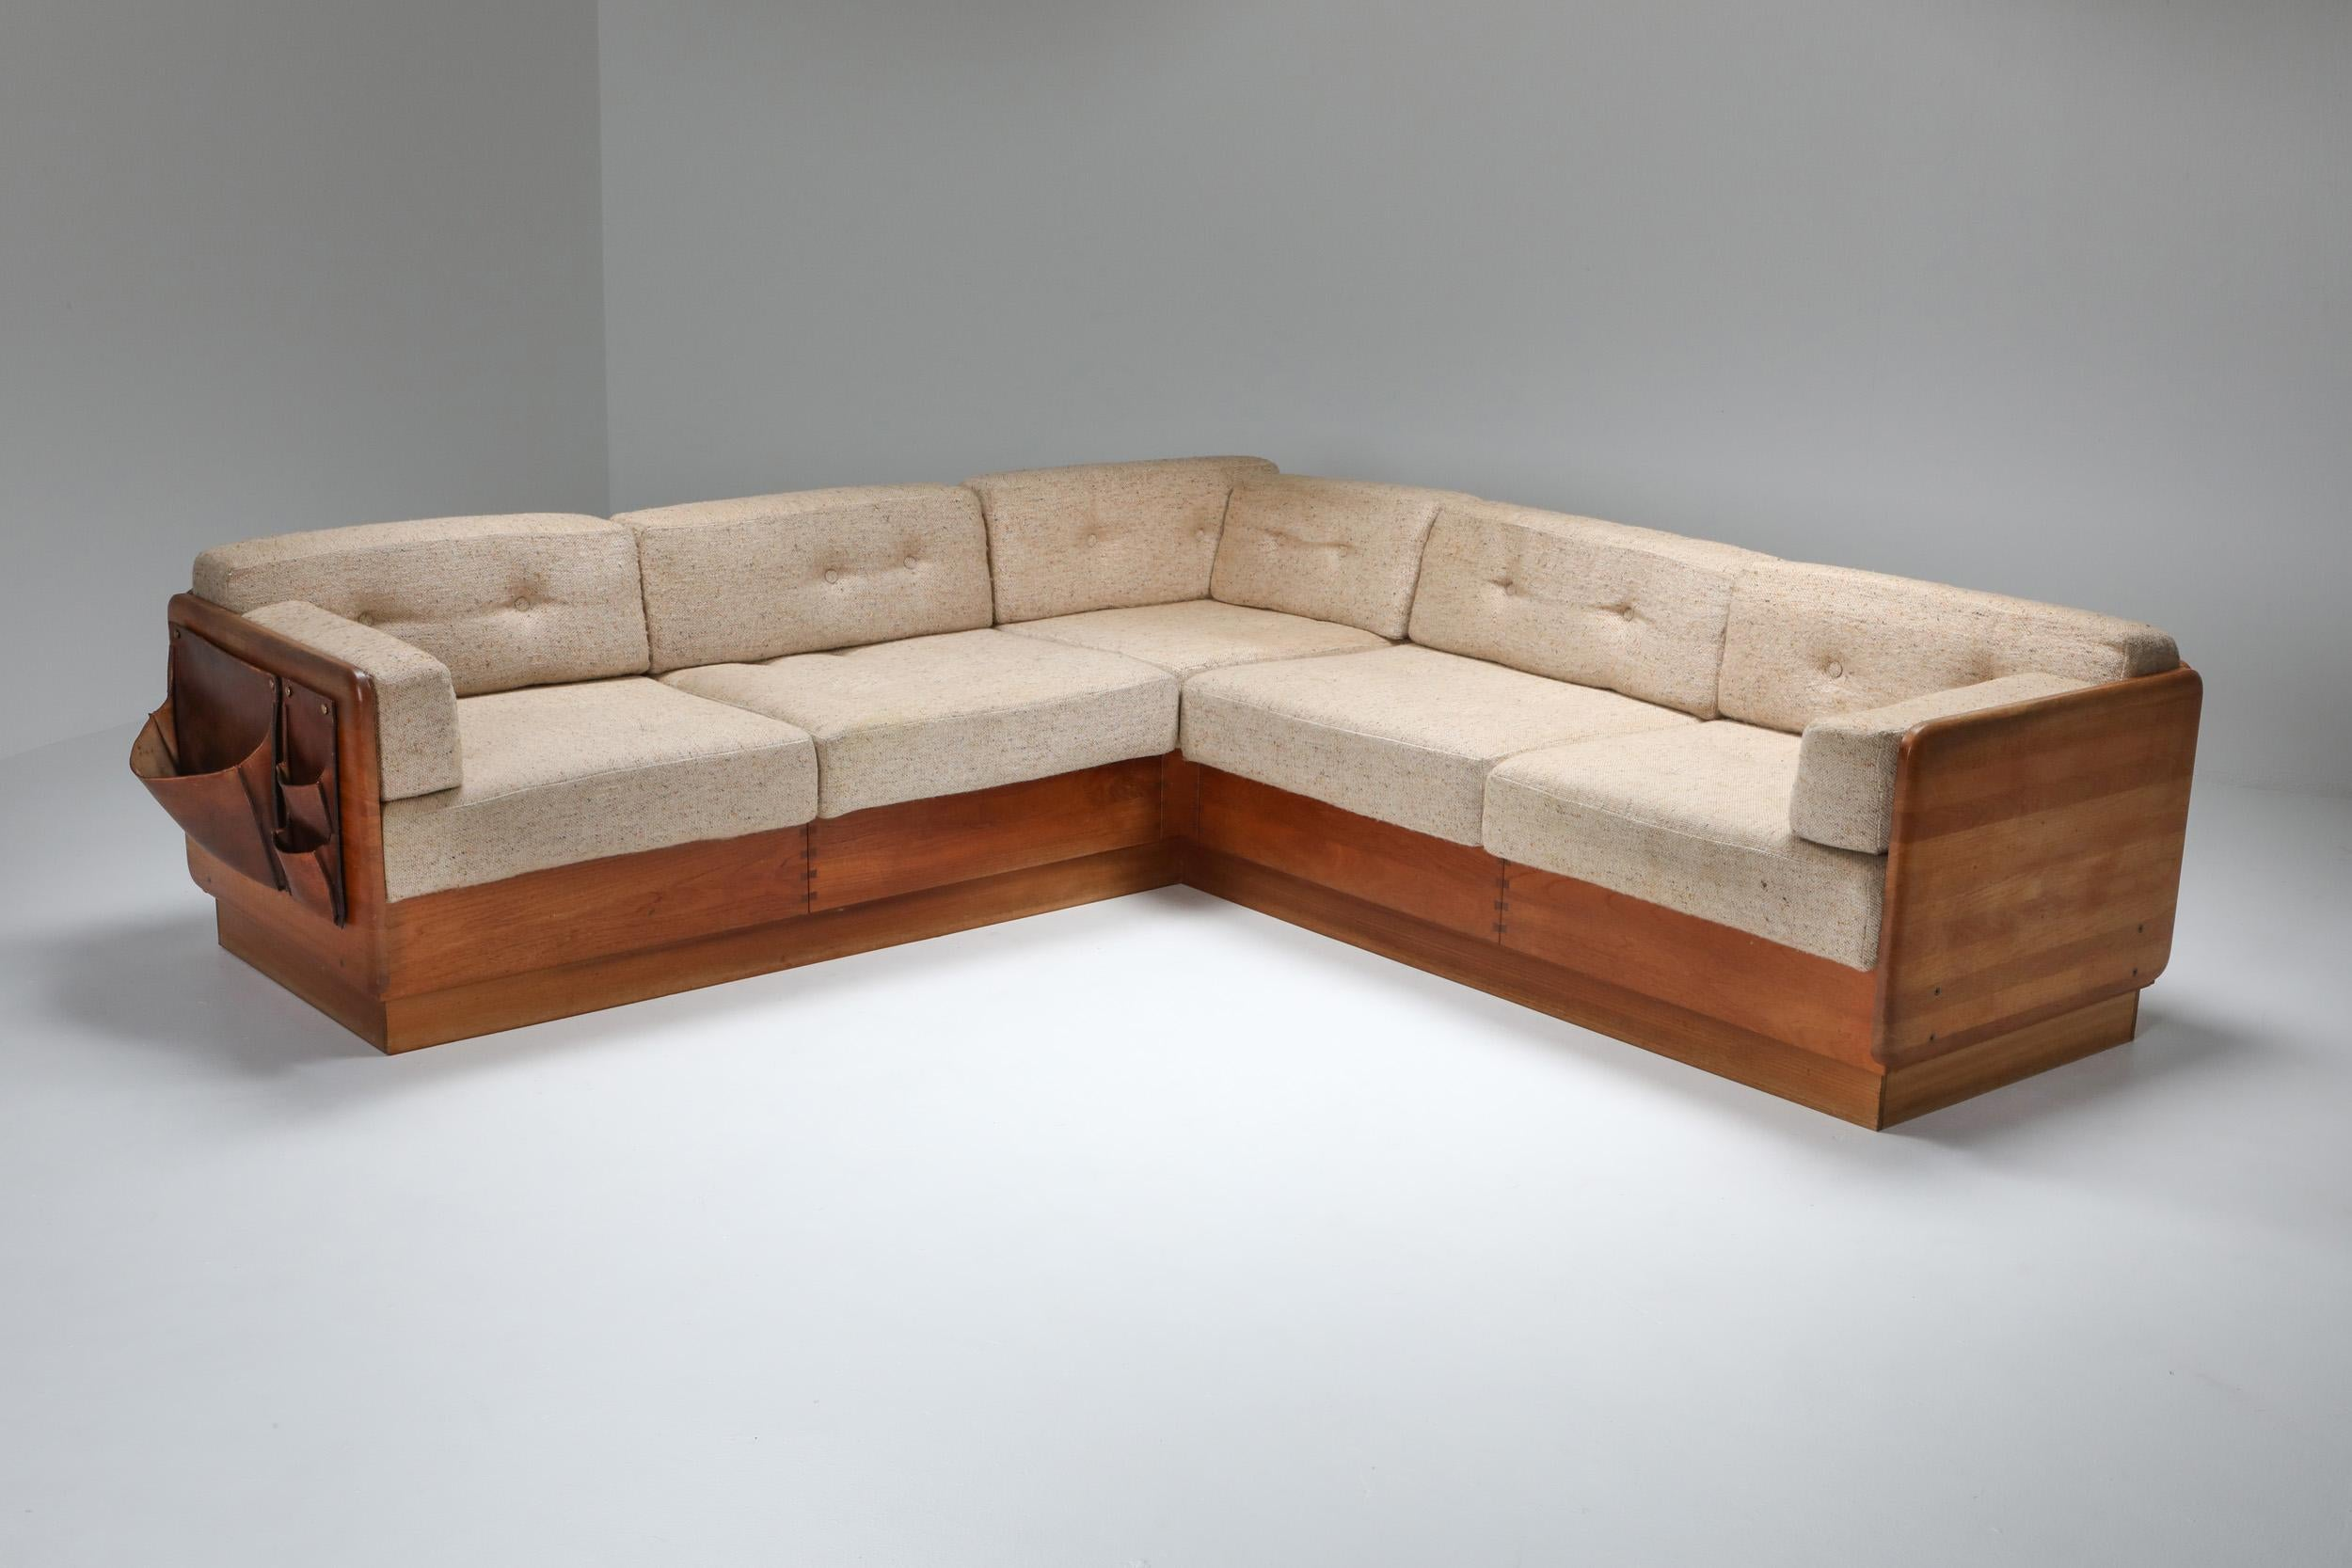 mid century modern sectional couch by mikael laursen